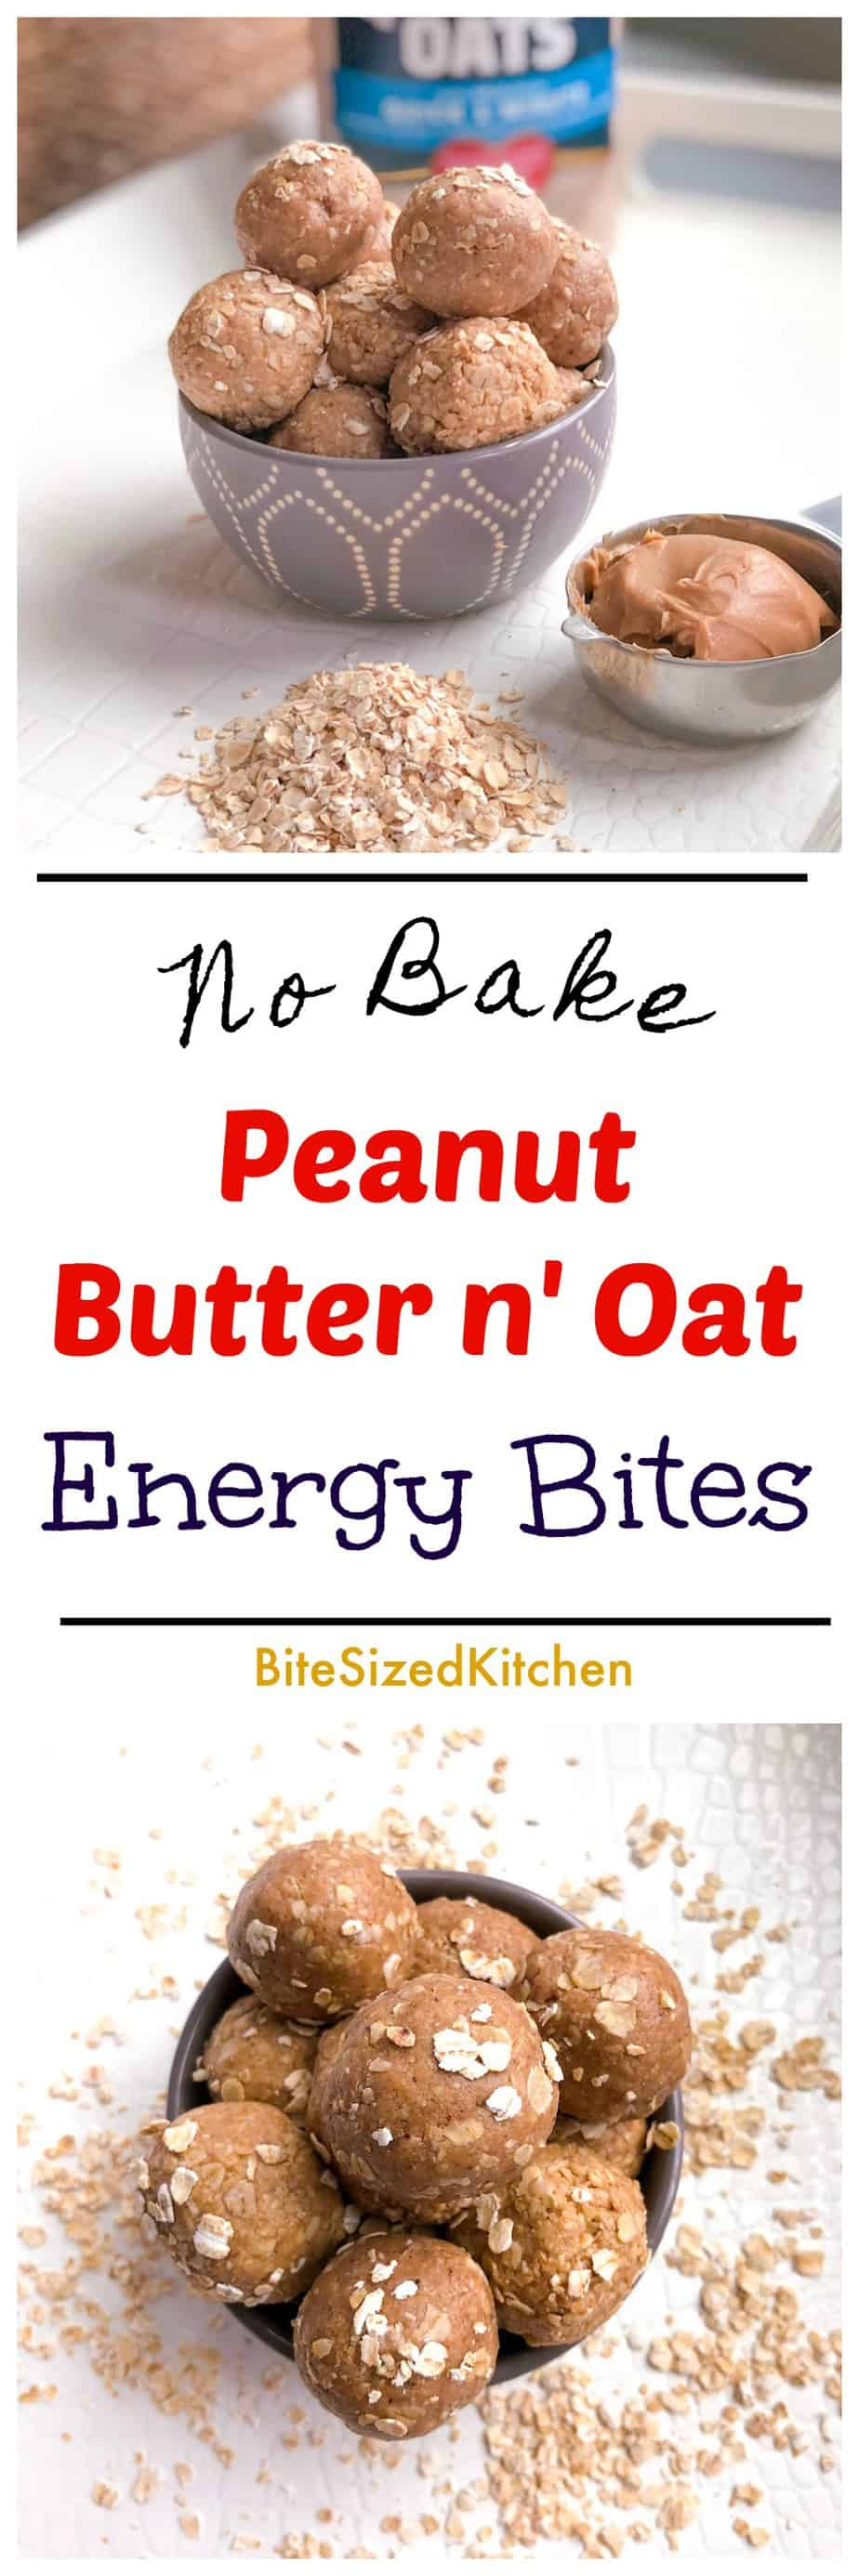 Healthy No Bake Protein Simple Energy Bites | Peanut Butter and Oatmeal Energy Bites | Paleo Low Carb Energy Bites | Energy Protein Balls | Healthy Keto Protein Bites | Peanut Butter Bites